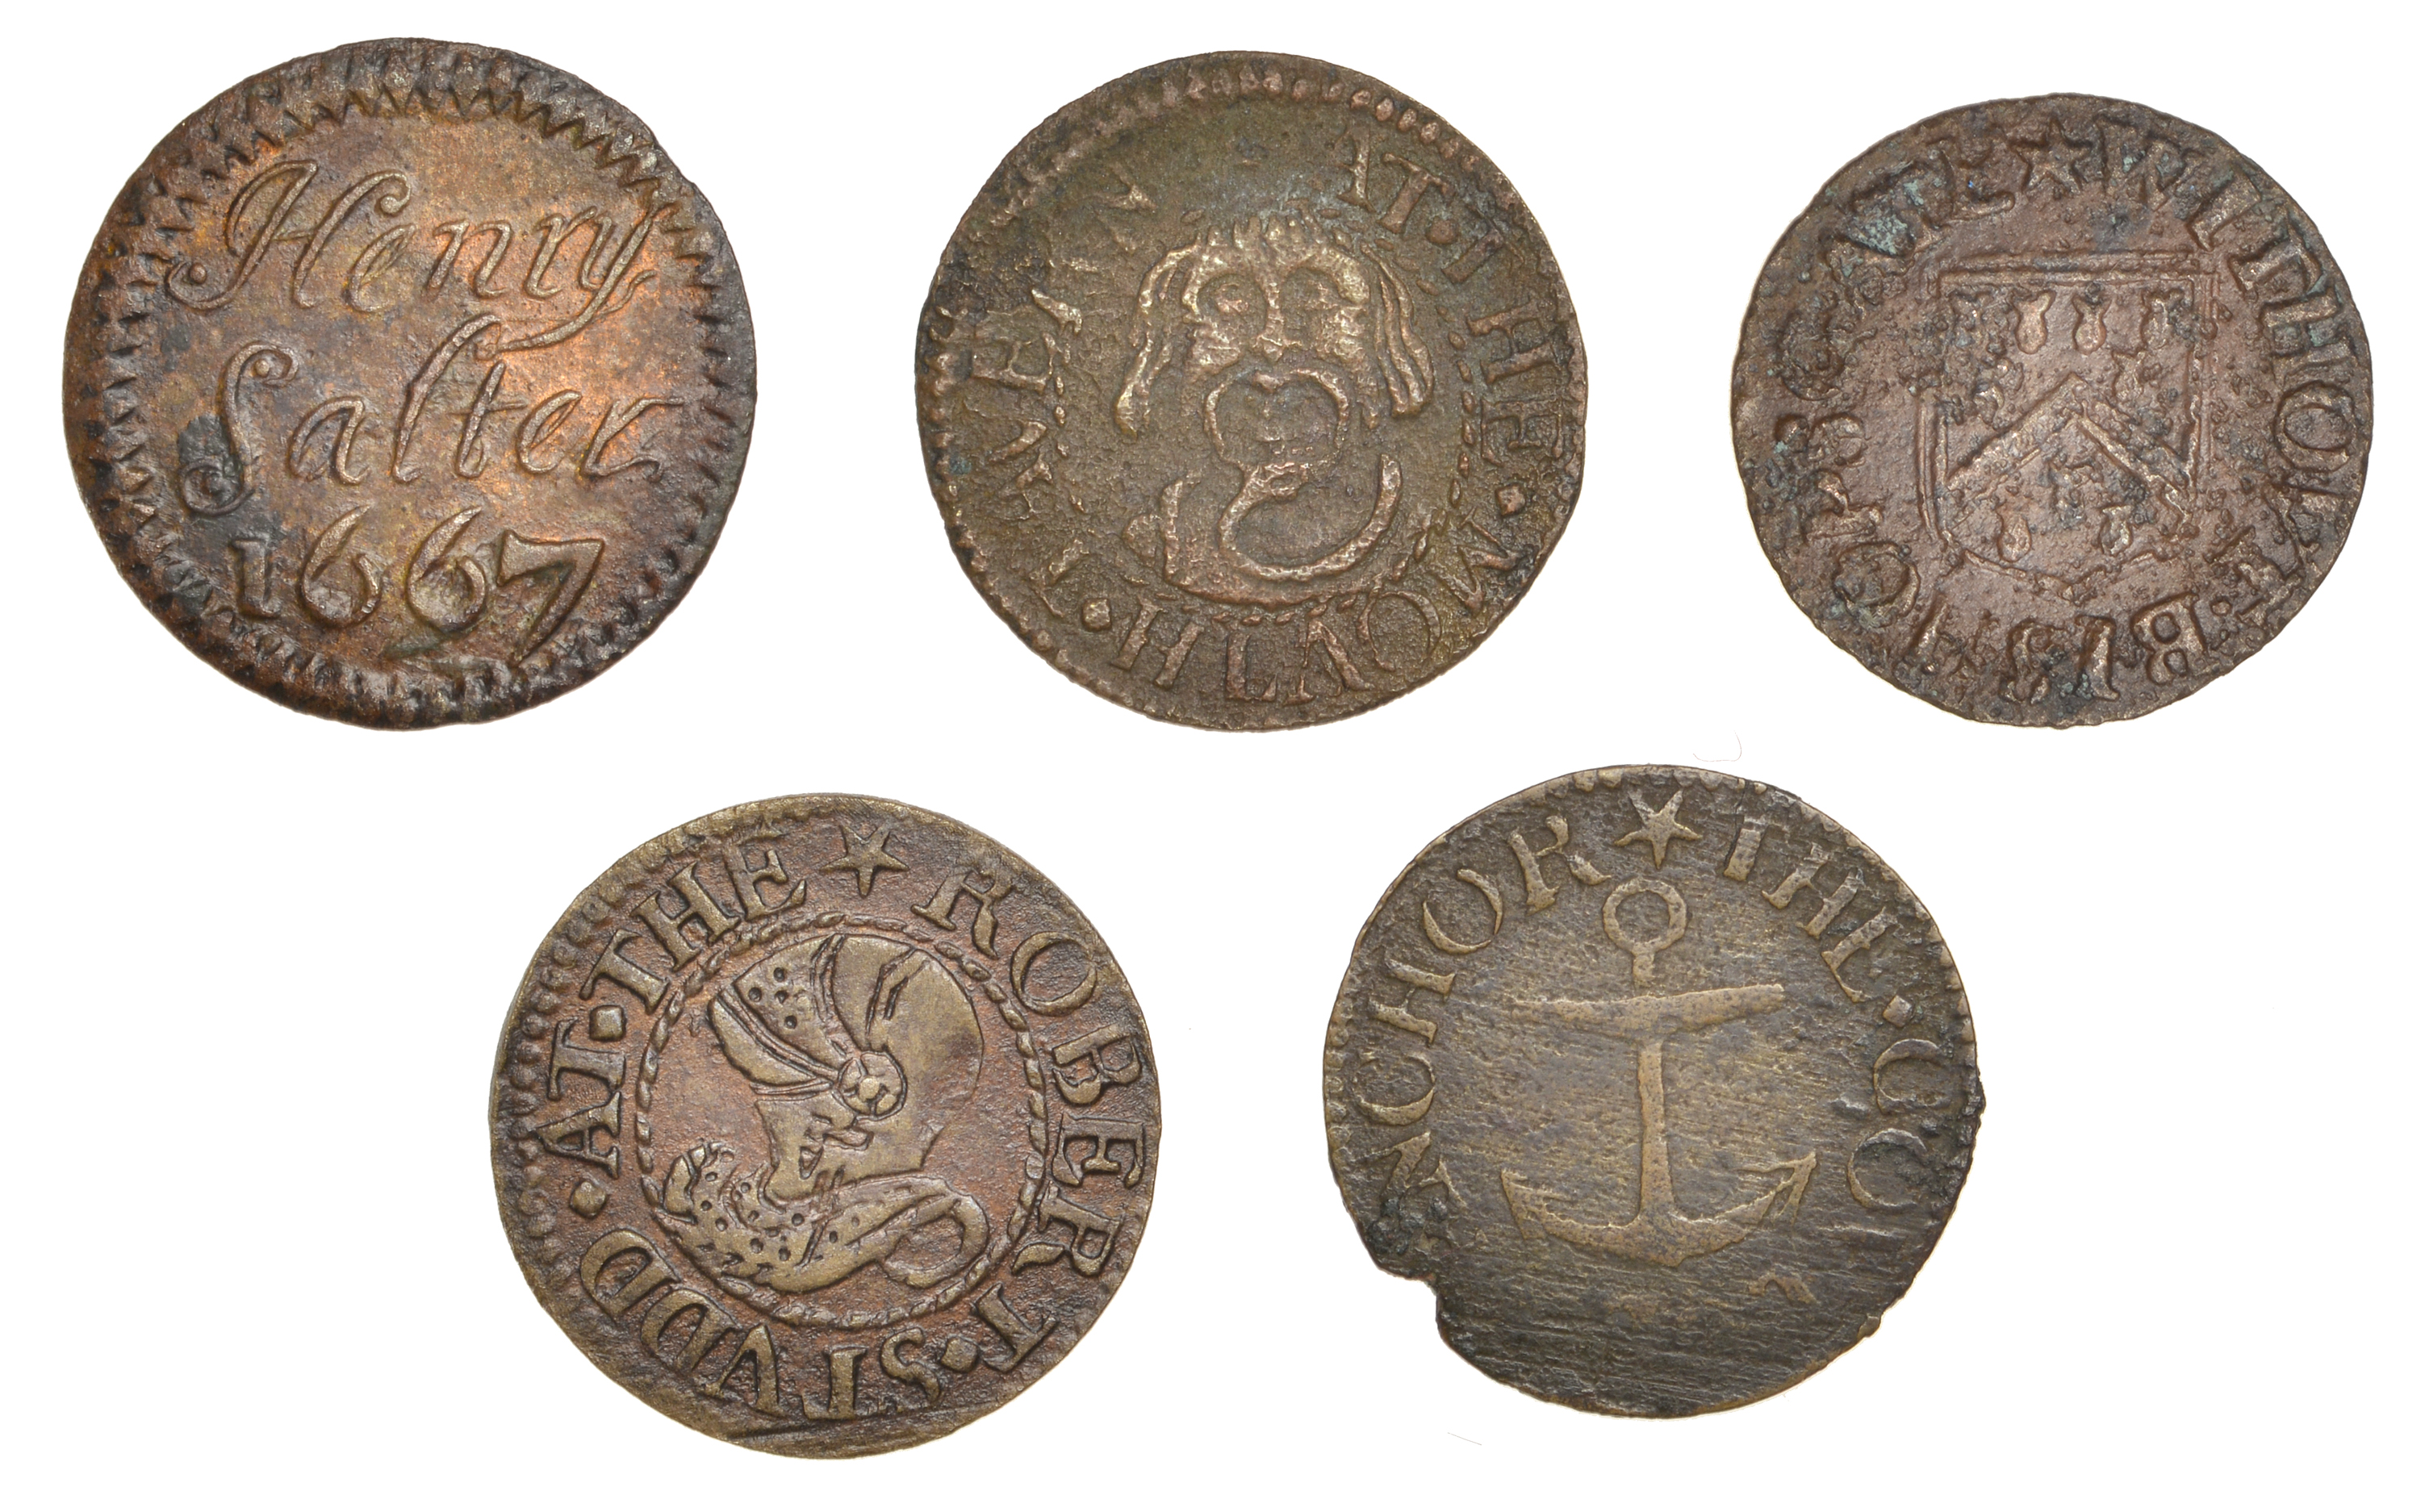 The Collection of 17th Century Tokens formed by the late Robert Thompson (Part III: Final)